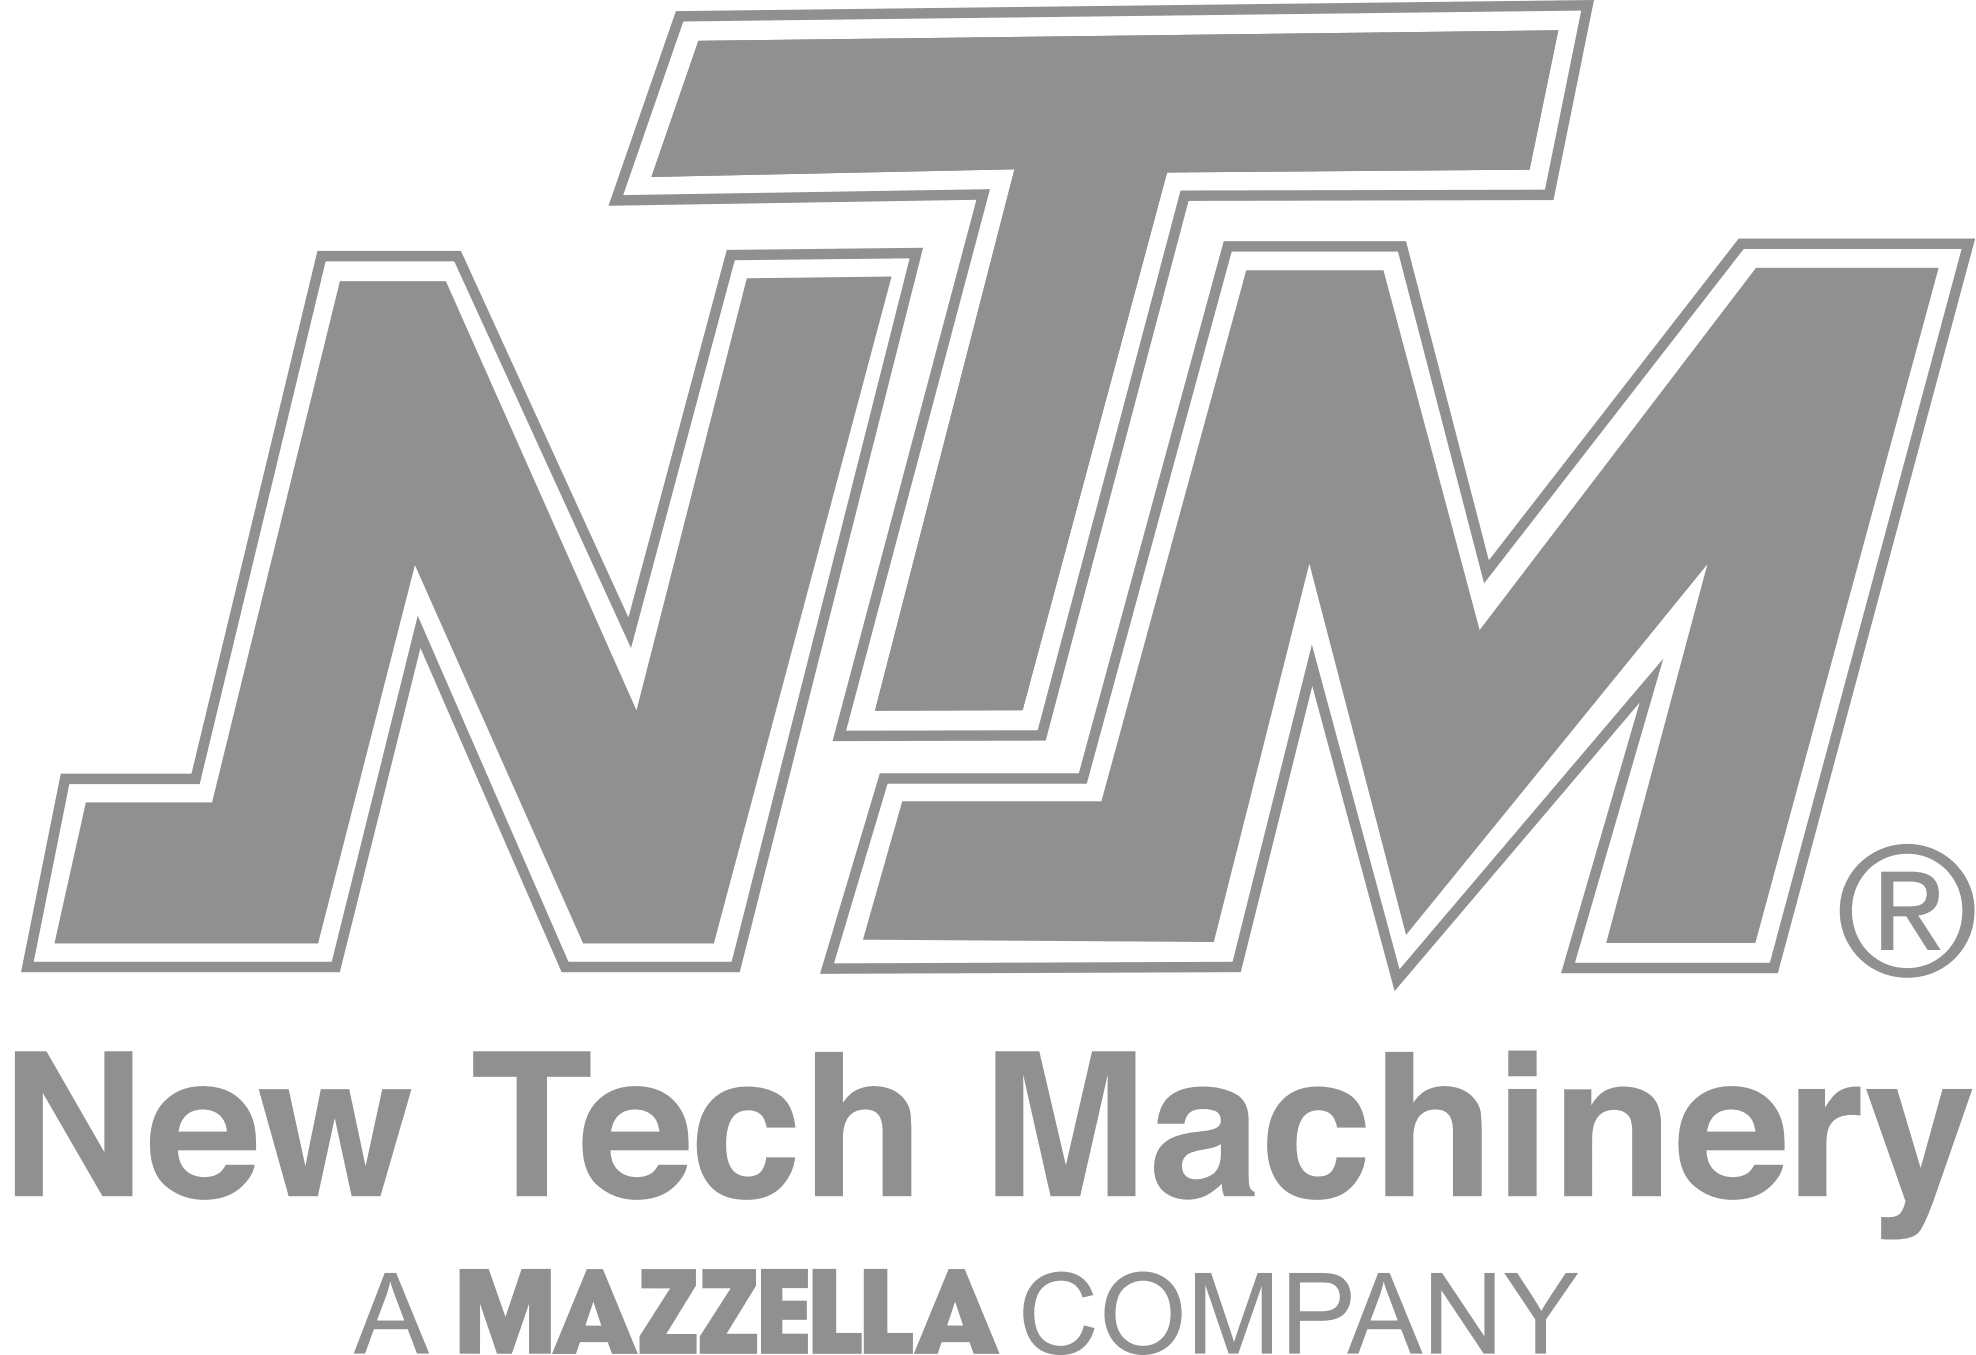 new tech machinery footer logo